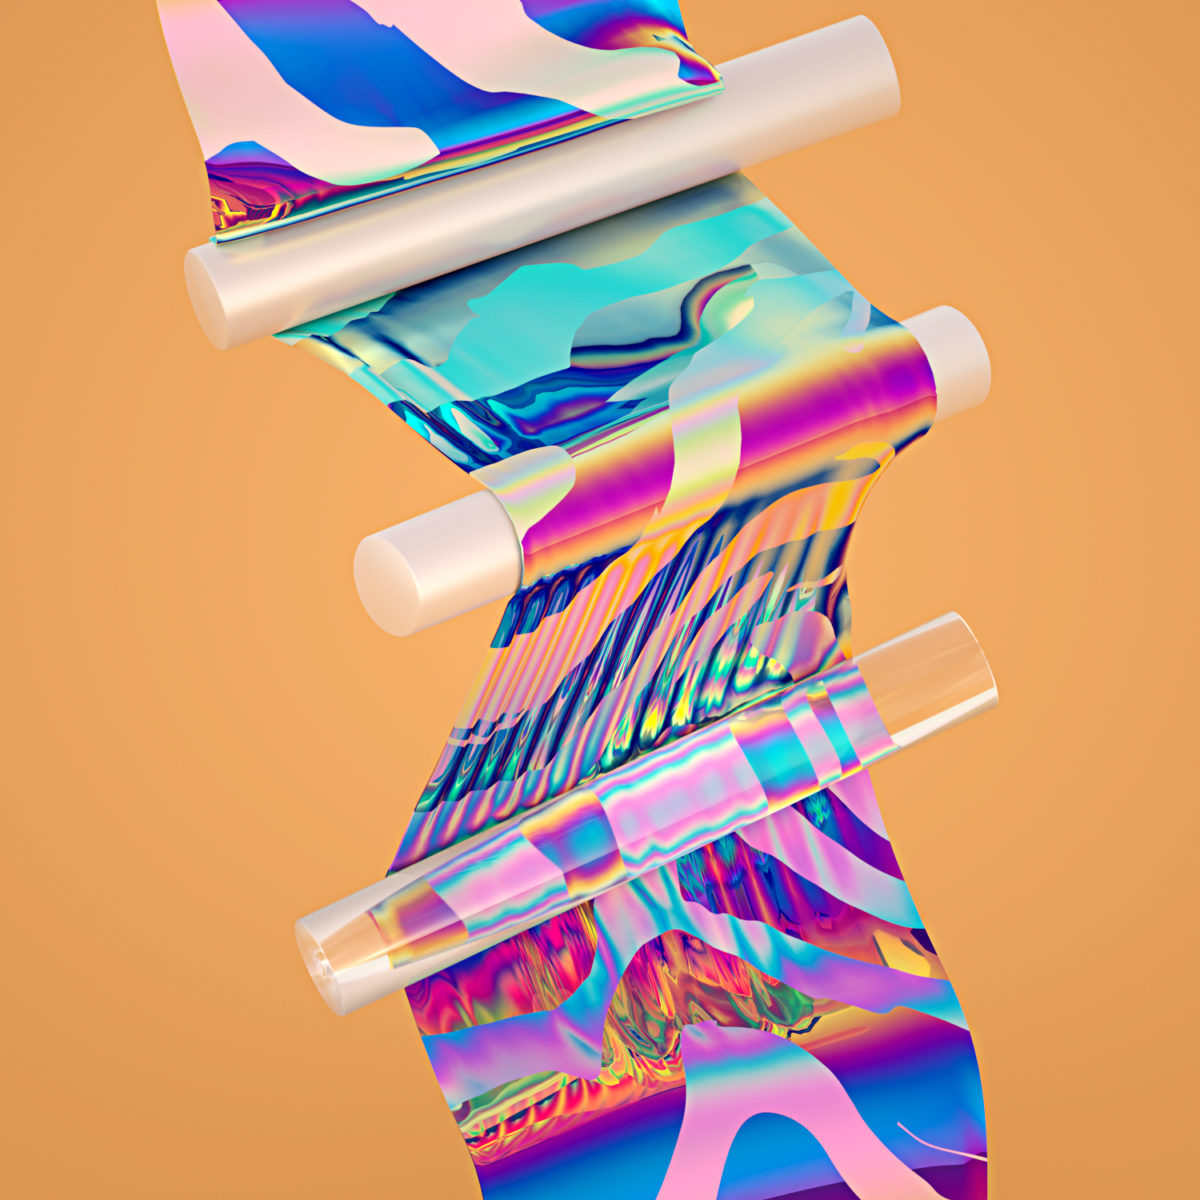 Oh My Pastel - Digital Art project by Machineast Singapore